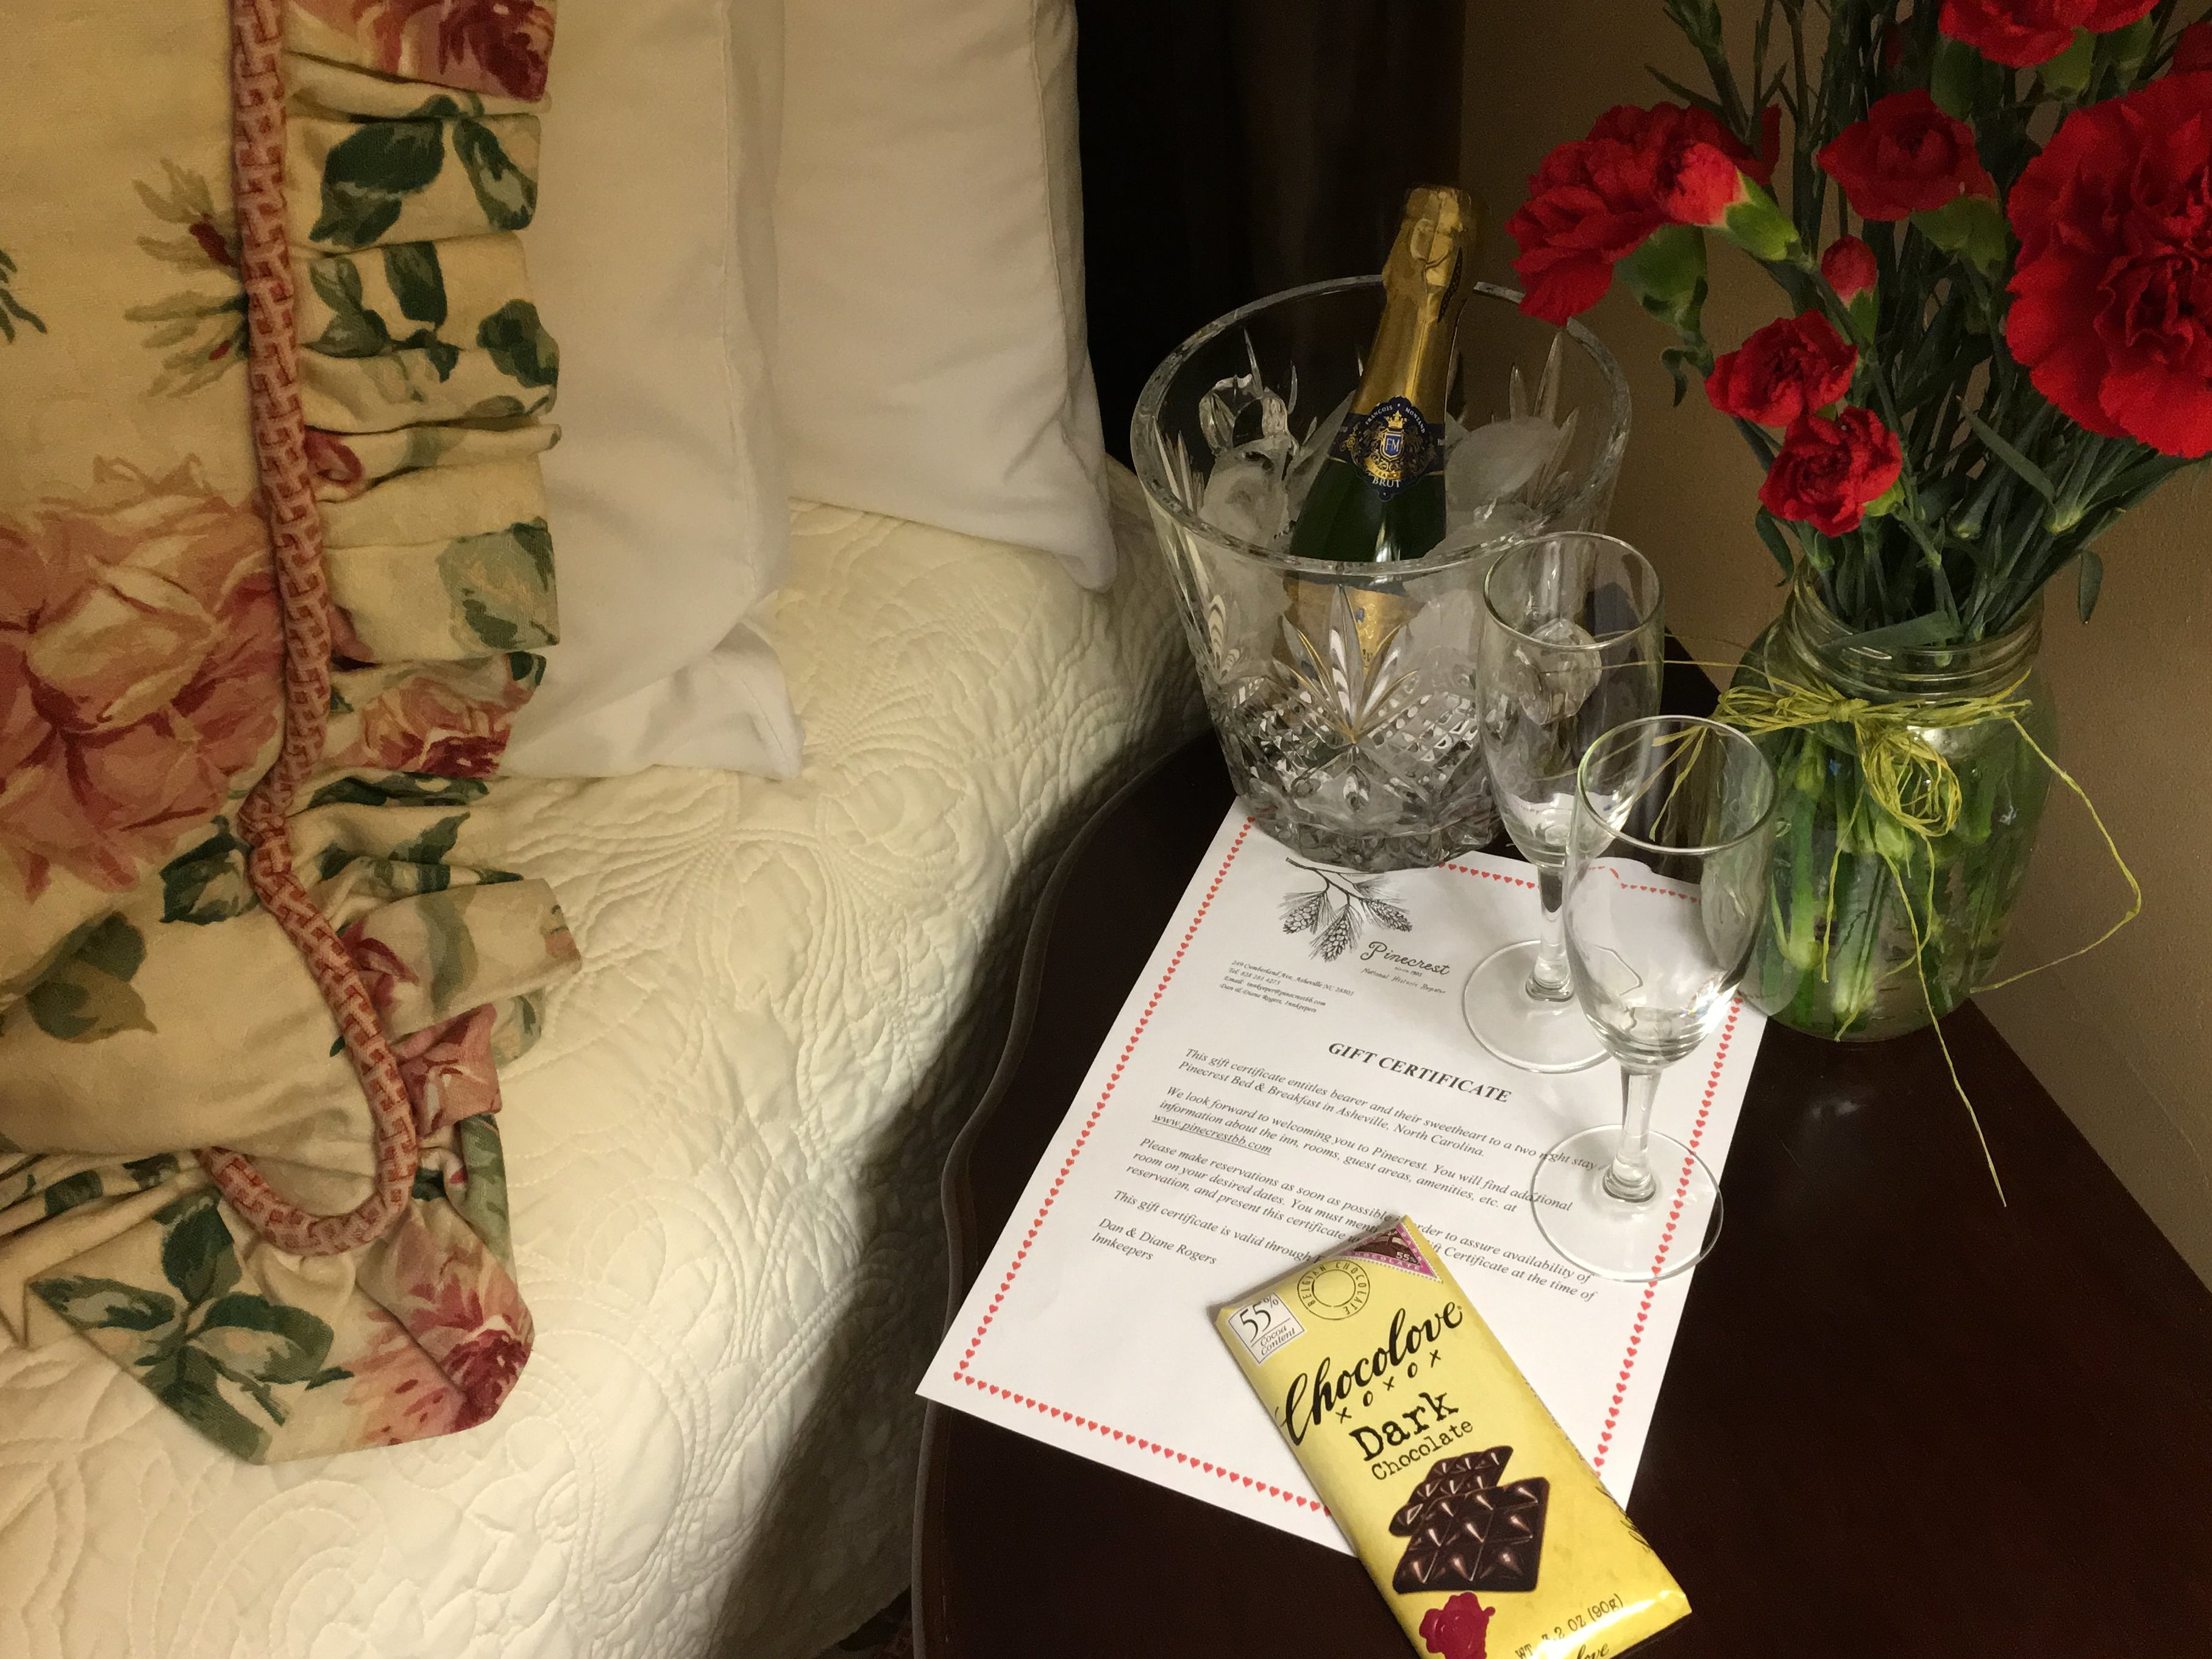 gift certificate laying on nightstand